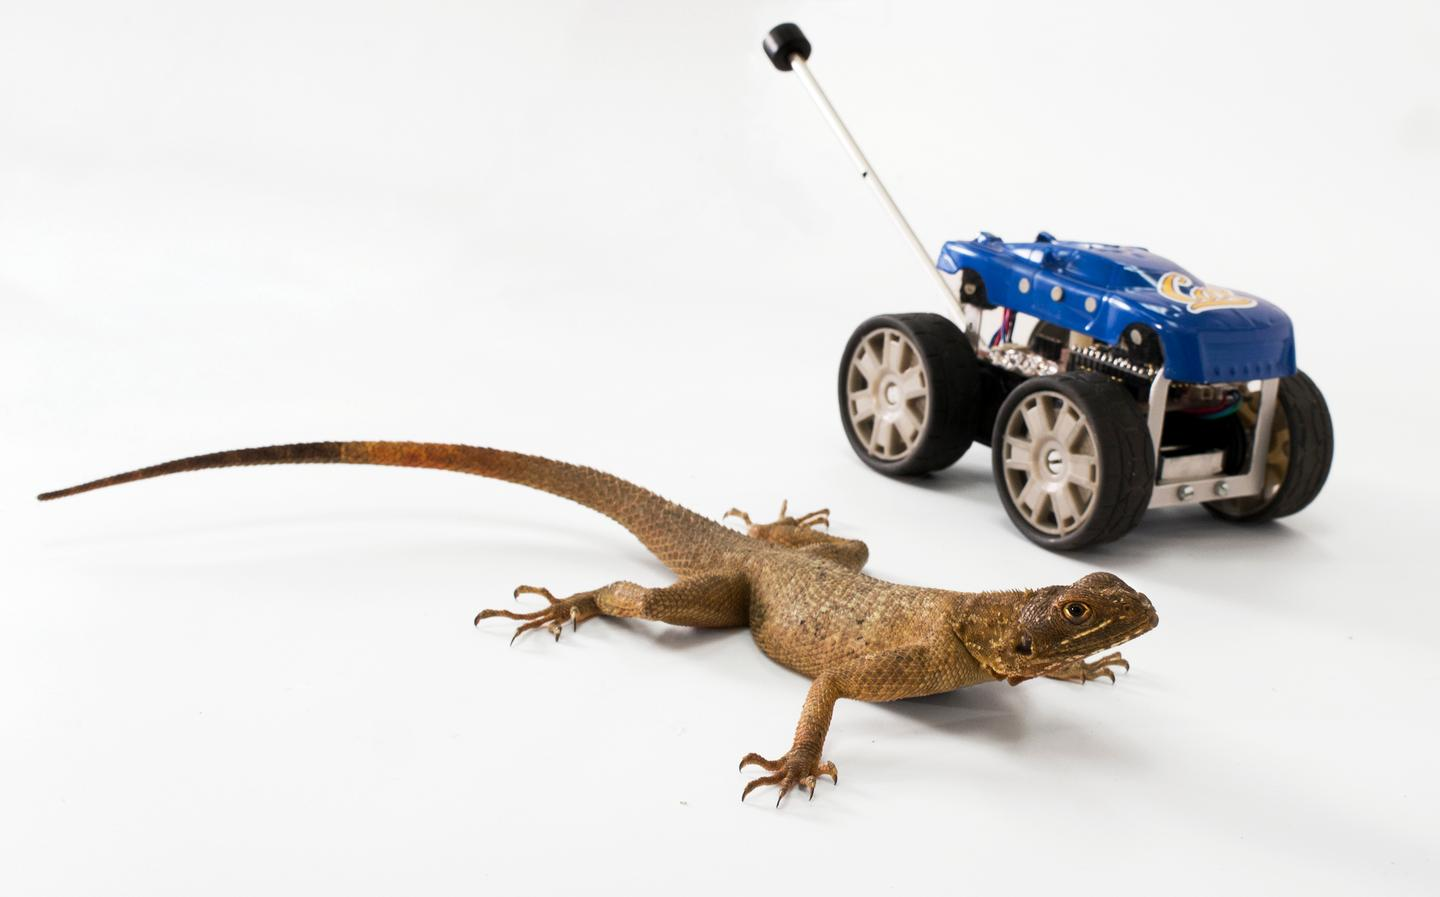 An African Agama lizard, and Tailbot